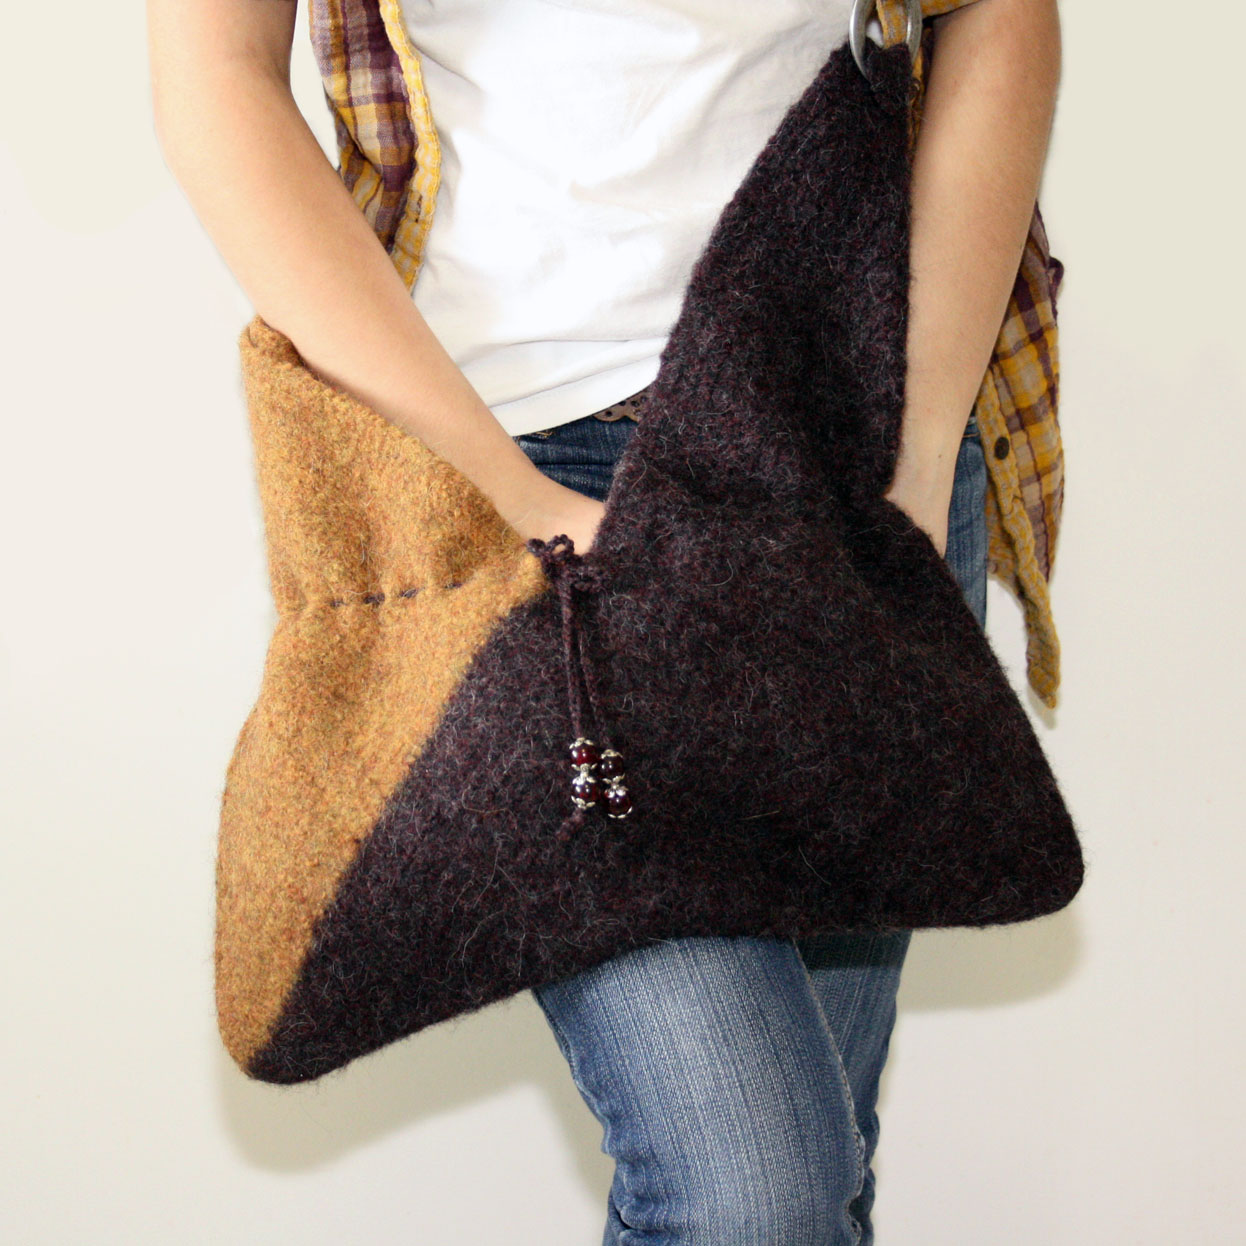 FELTED BAG CROCHET - CROCHET KNIT PATTERN SCARF - Crochet